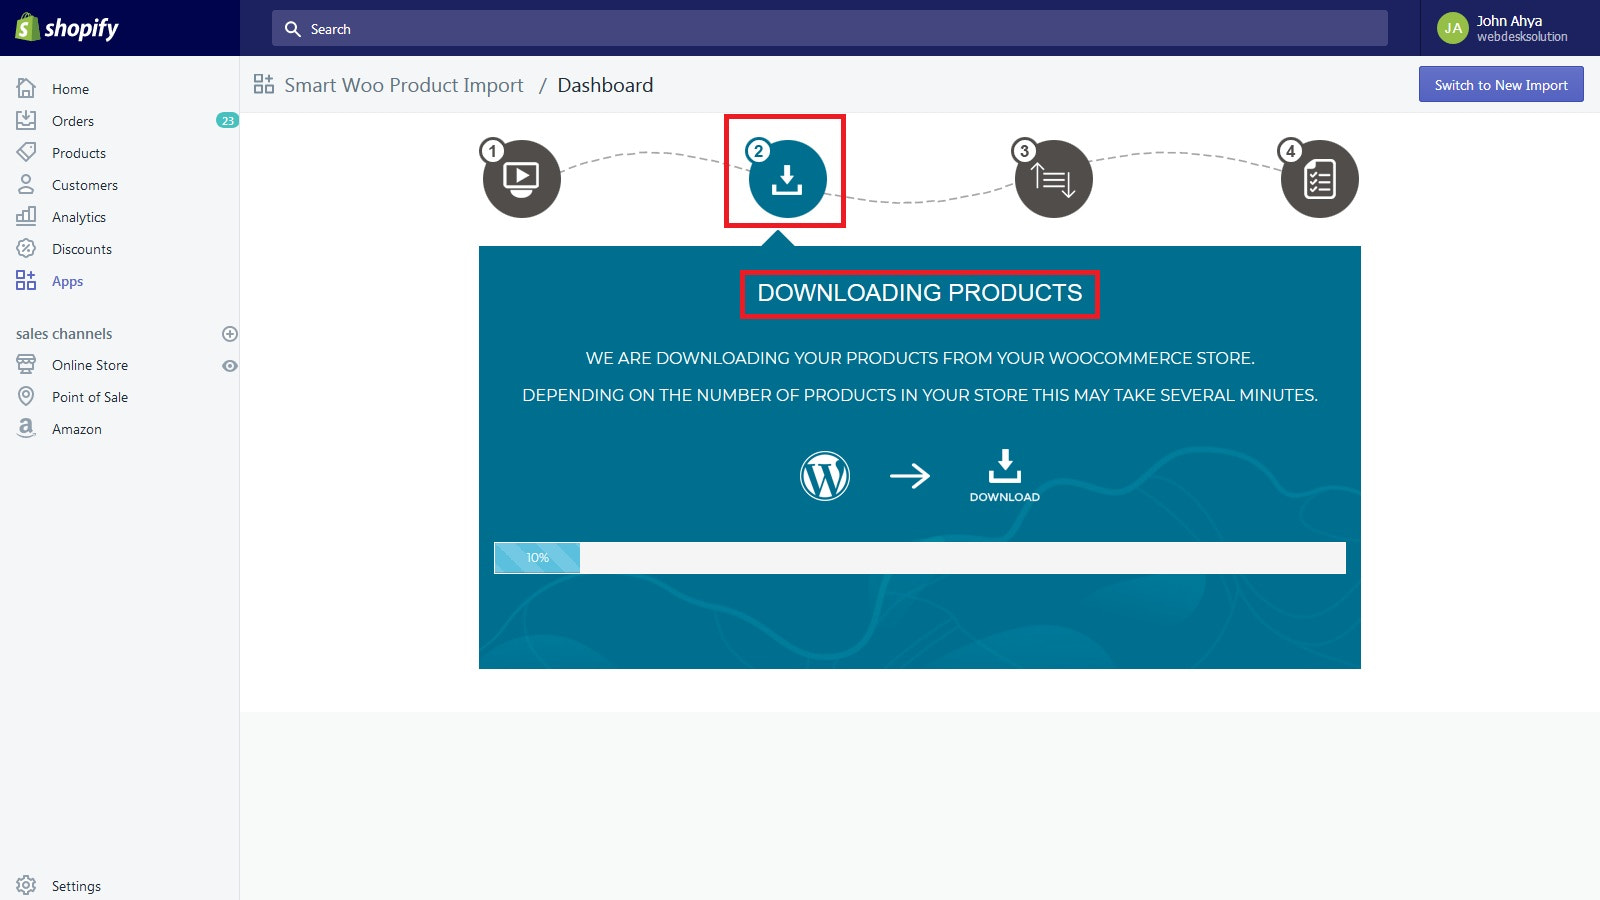 Downloading Products